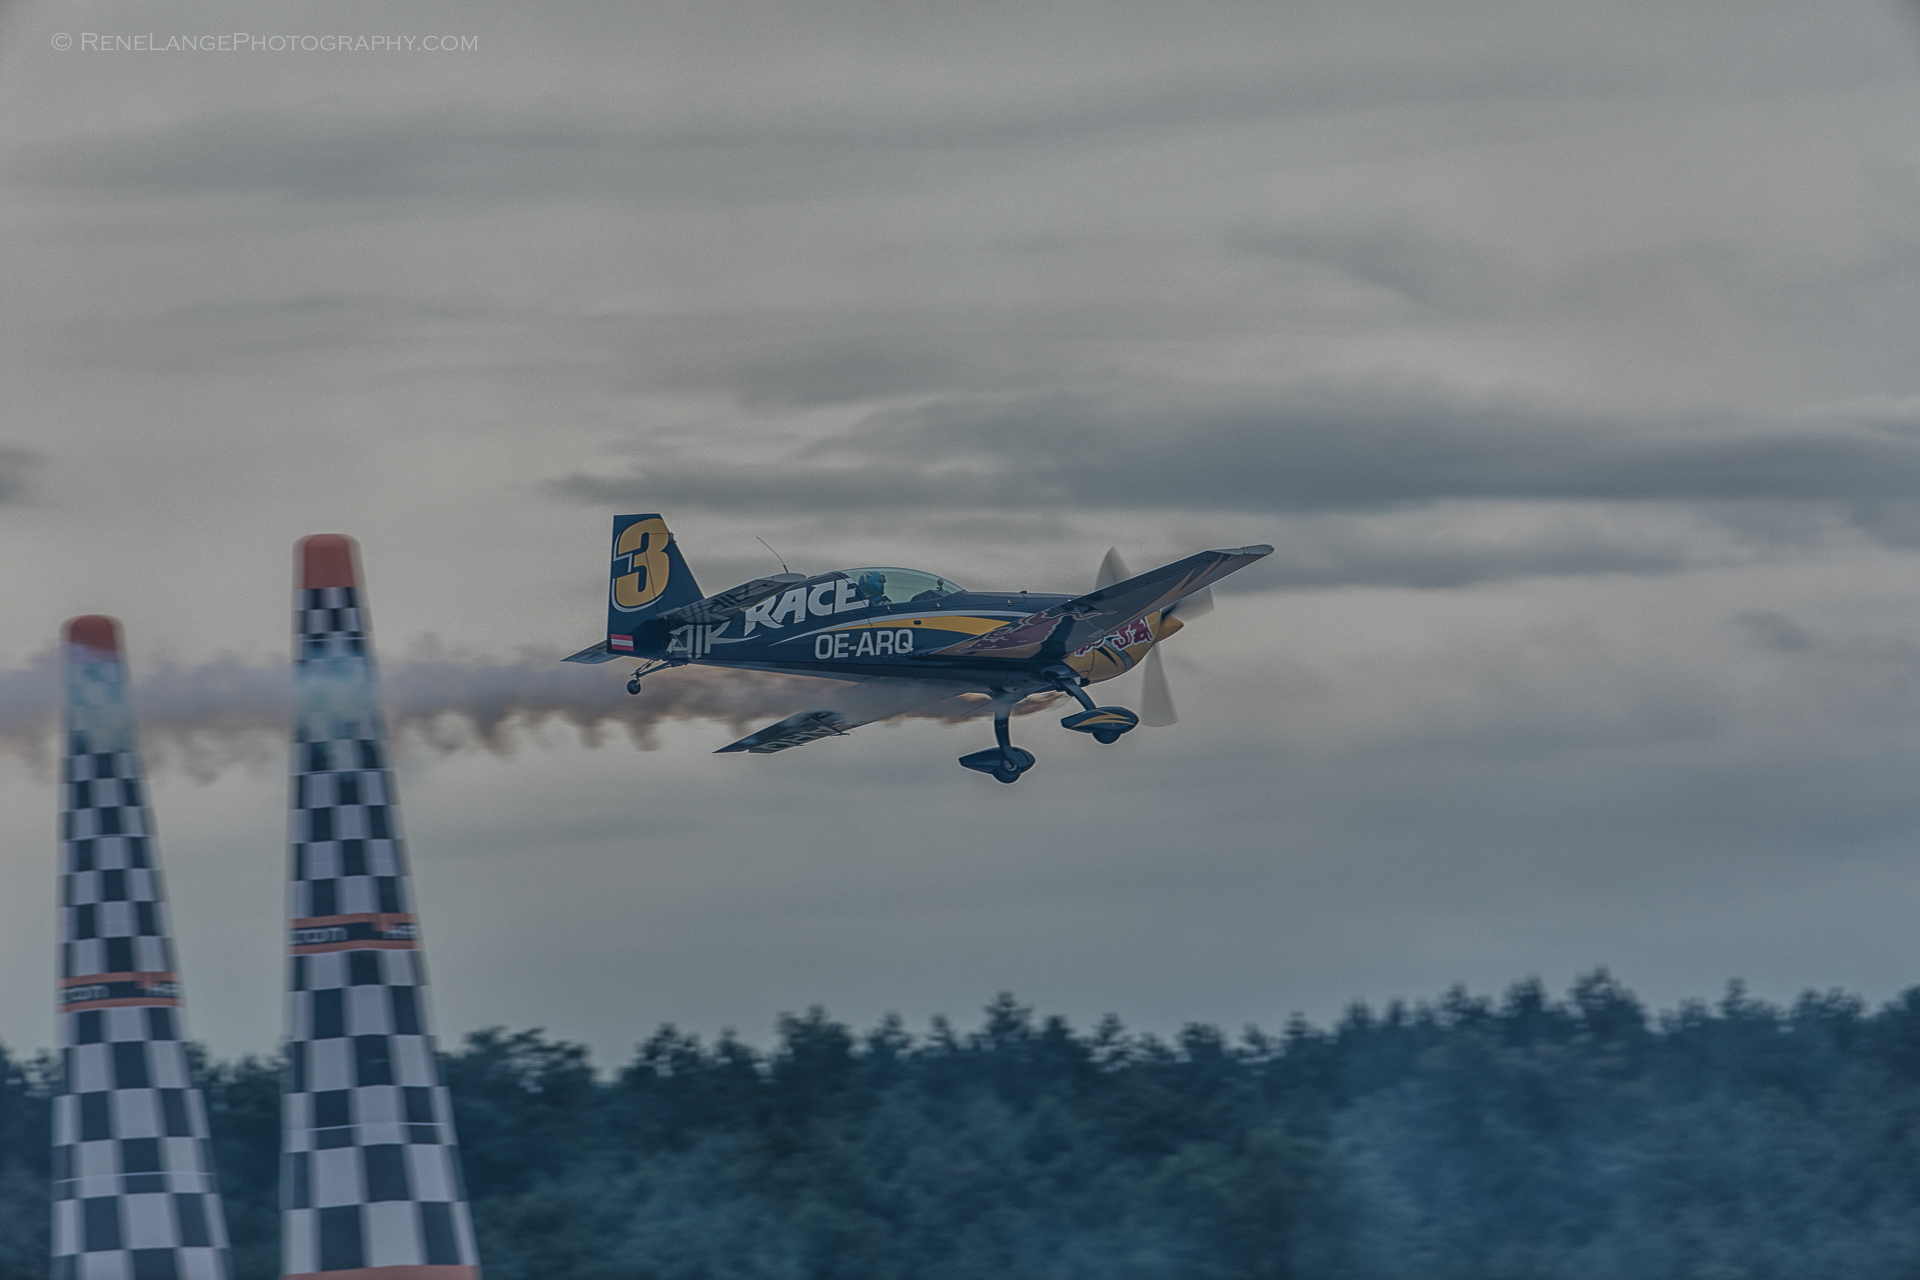 Red Bull Air Race Lausitzring 2017 – Rene Lange Photography